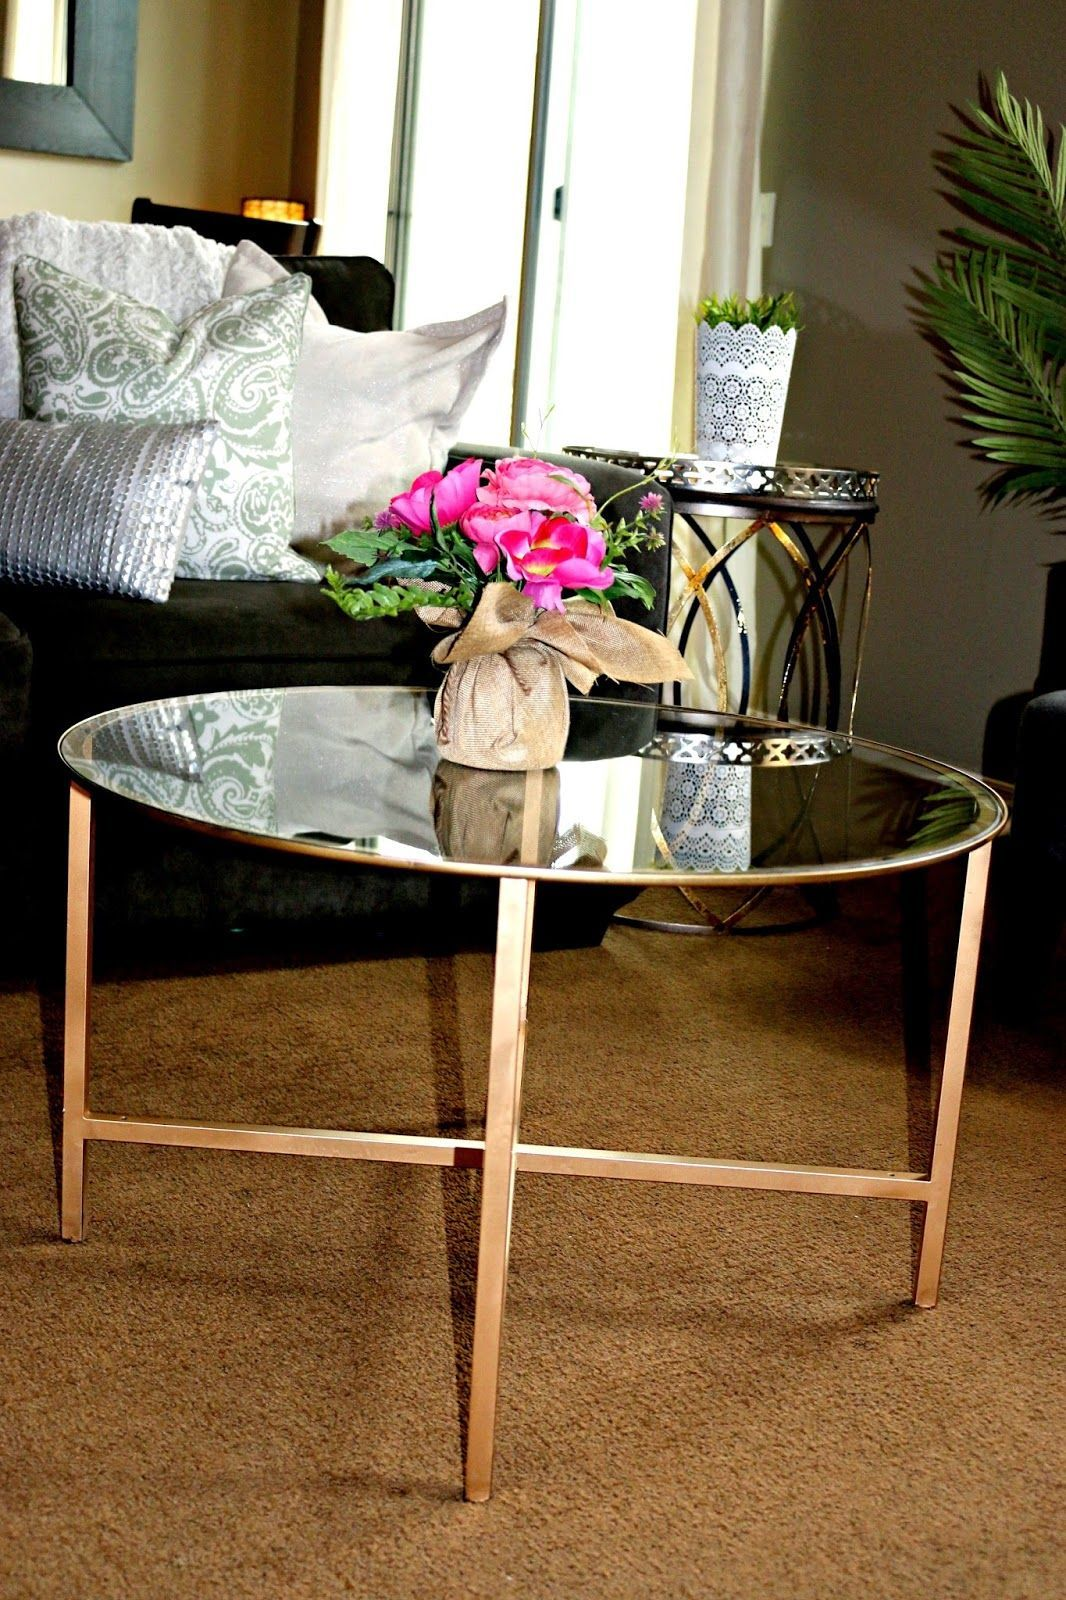 Vittsjo Round Coffee Table Hack Collection Capri Co Diy Ikea Hack Vittsjo Coffee Table Coffee Table Hacks Diy Ikea Hacks Ikea Diy [ 1600 x 1066 Pixel ]